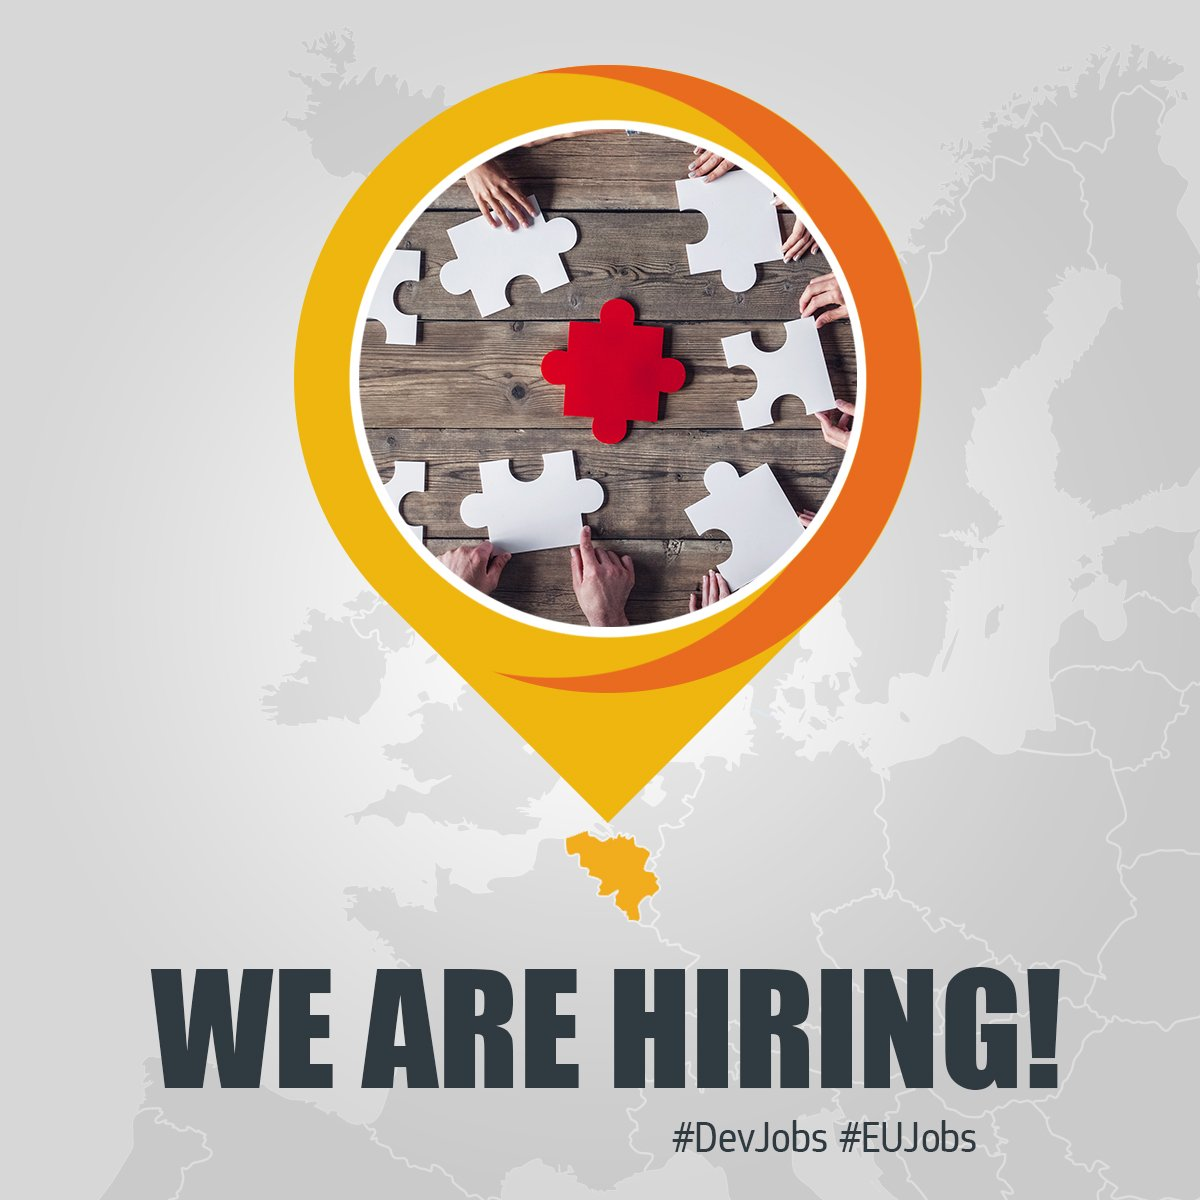 test Twitter Media - We are looking for a policy officer in the field of food security and nutrition. Apply before 30 January 👉https://t.co/GlDlBvvlHJ  #EUJobs #WeAreHiring https://t.co/ldM3yU4WE5